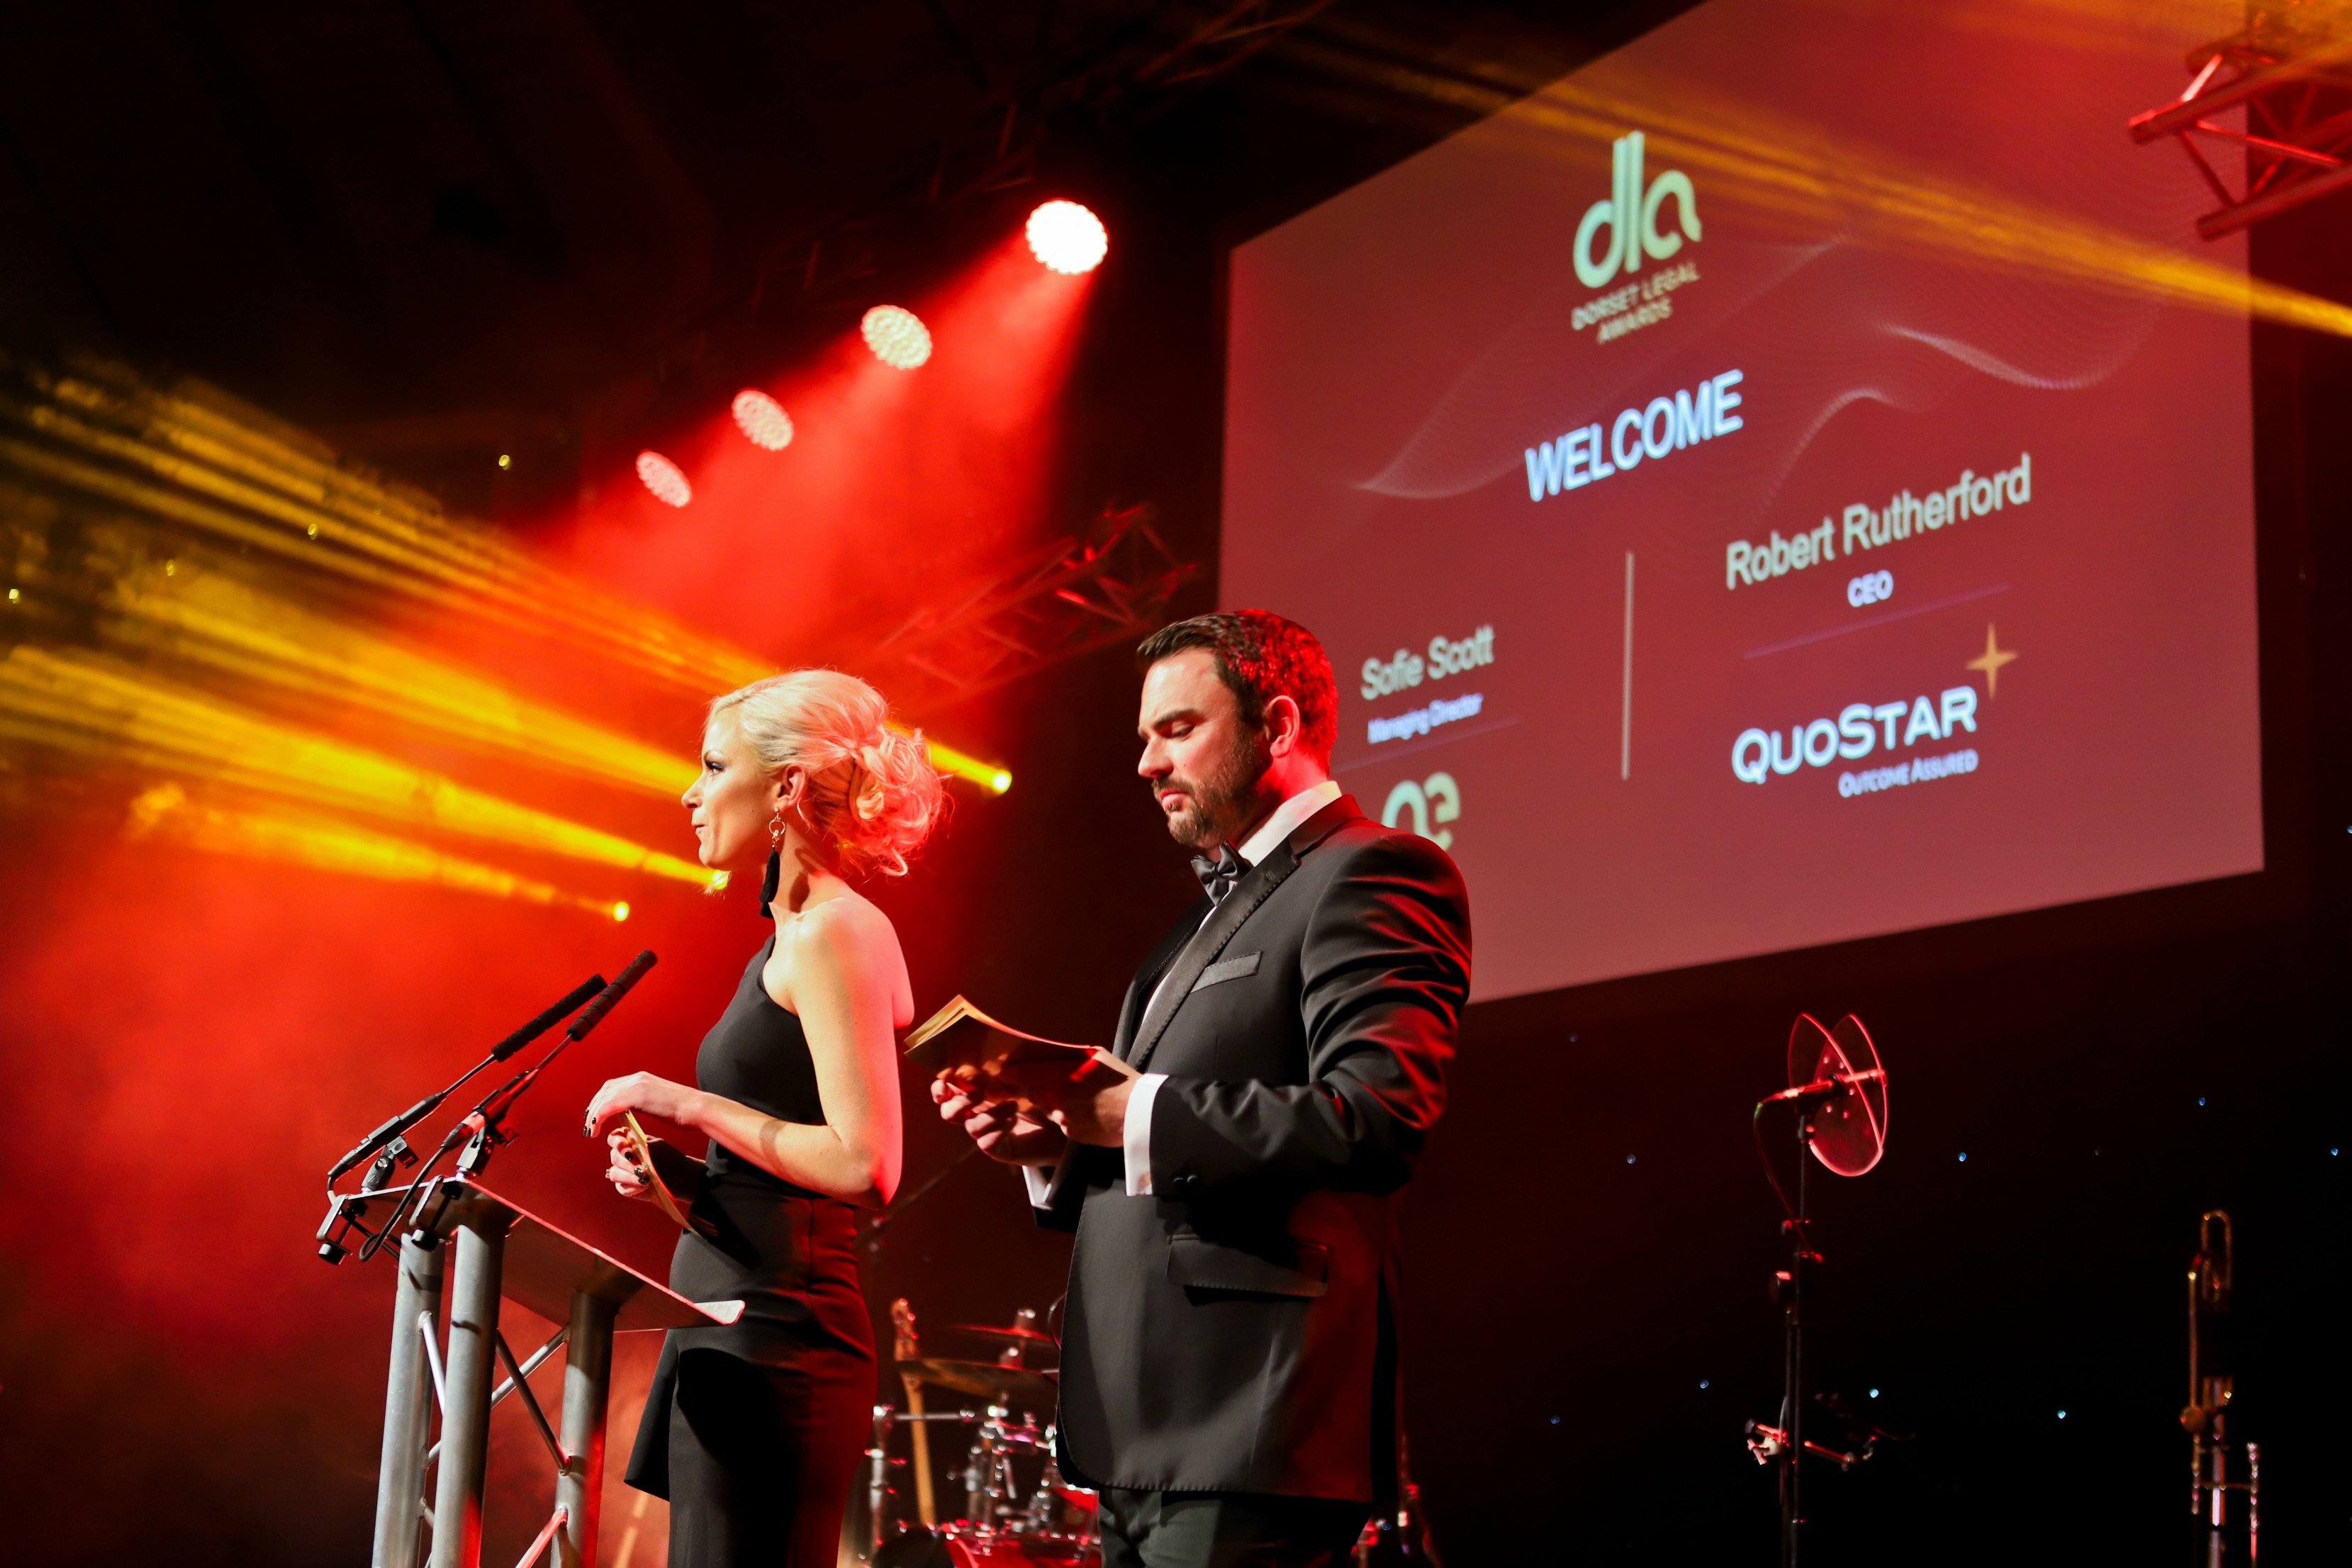 Sofie Scott and Robert Rutherford at the Dorset Legal Awards